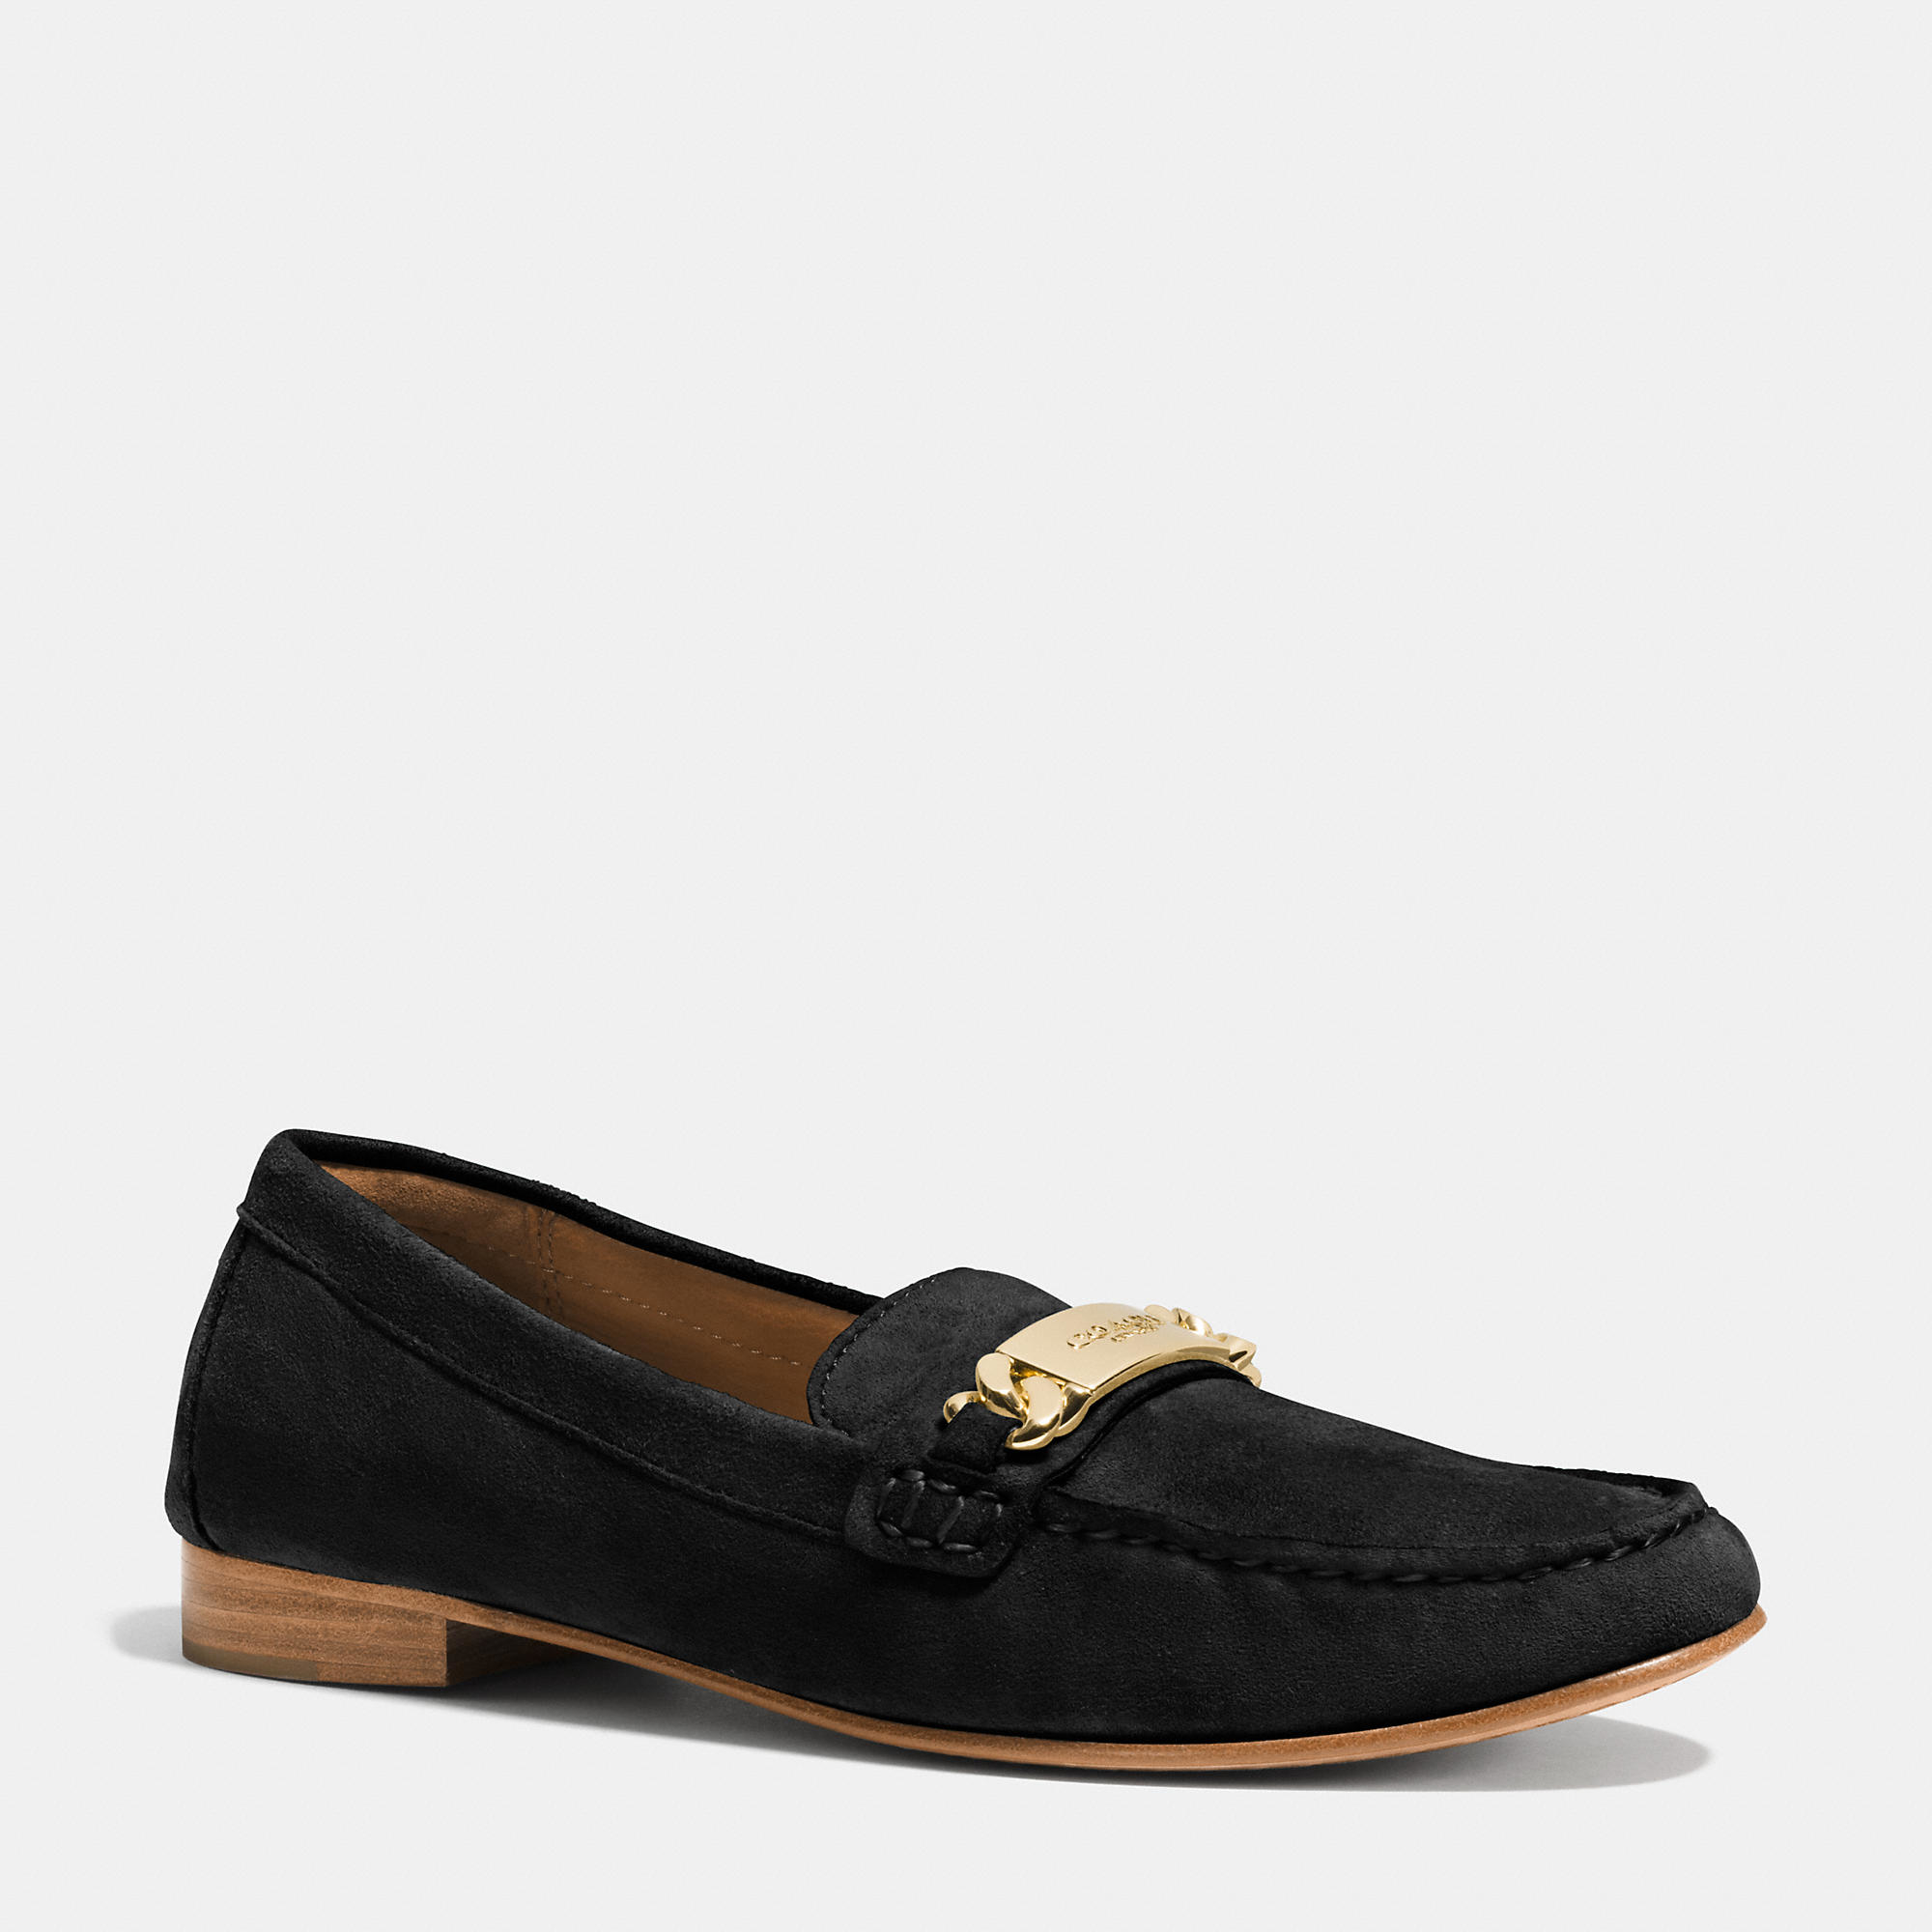 ad05844c2e7 Lyst - COACH Kimmie Topstitched Suede Loafers in Black